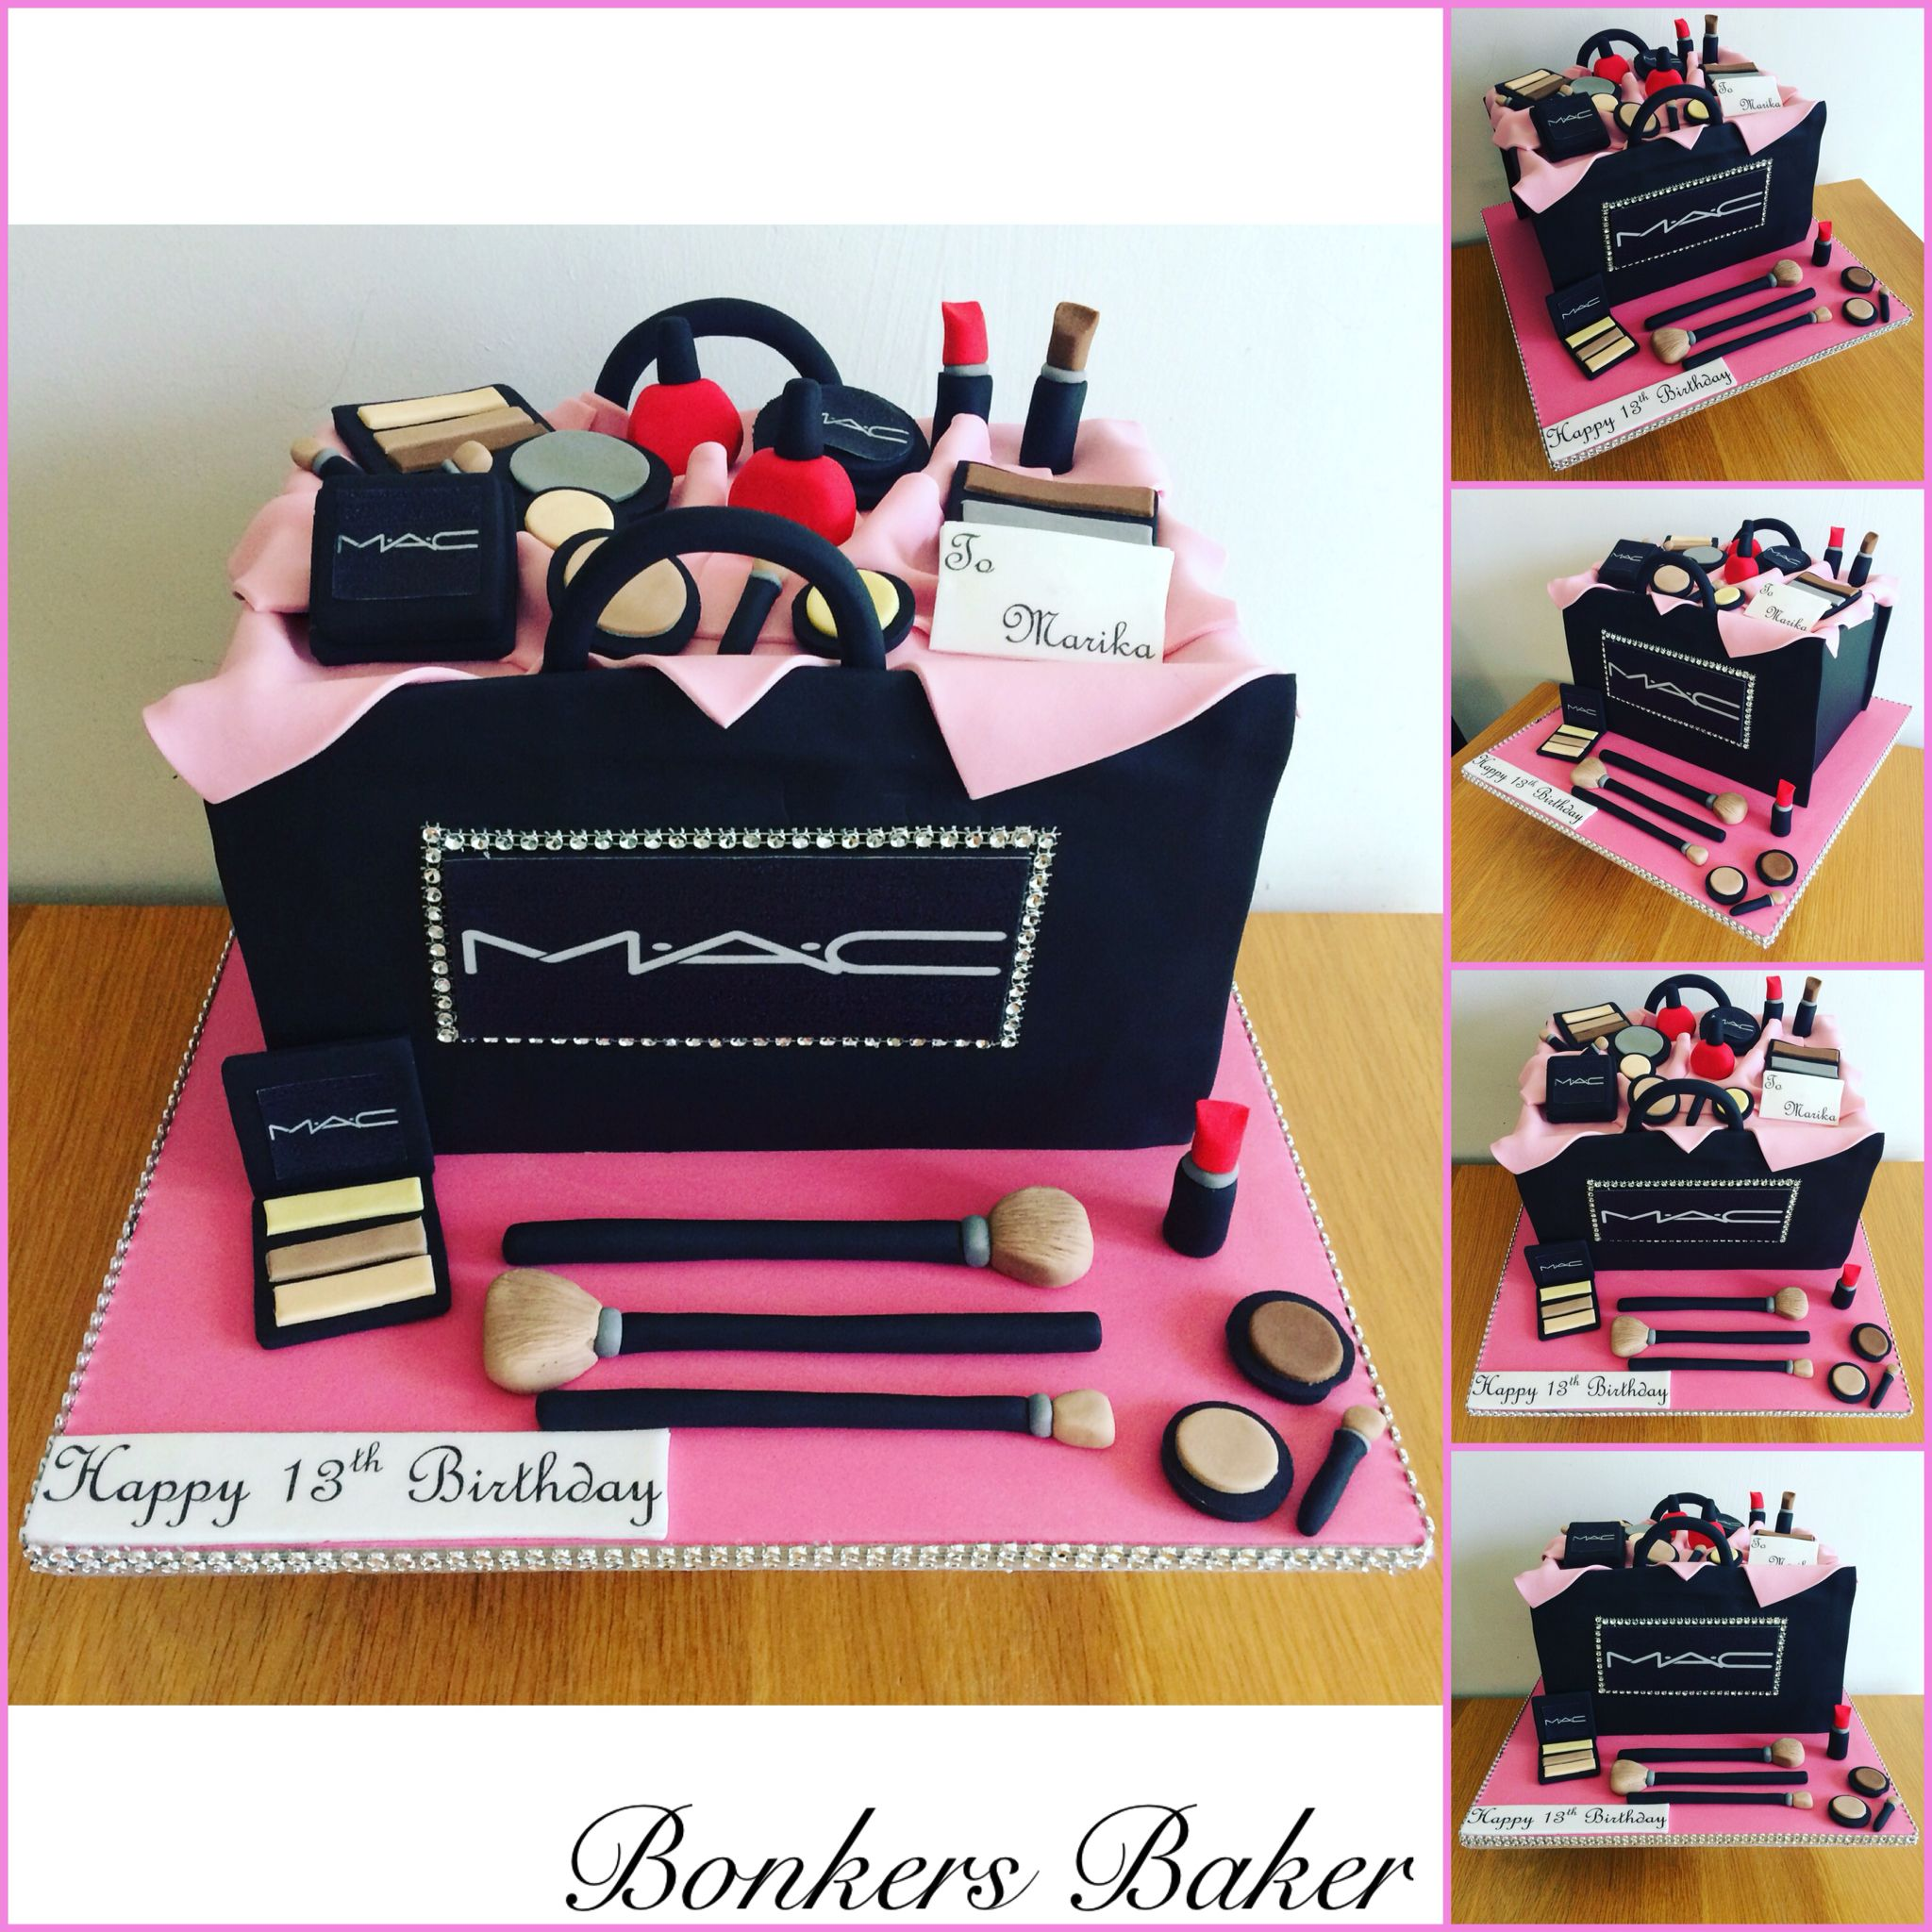 How to make a purse cake without fondant